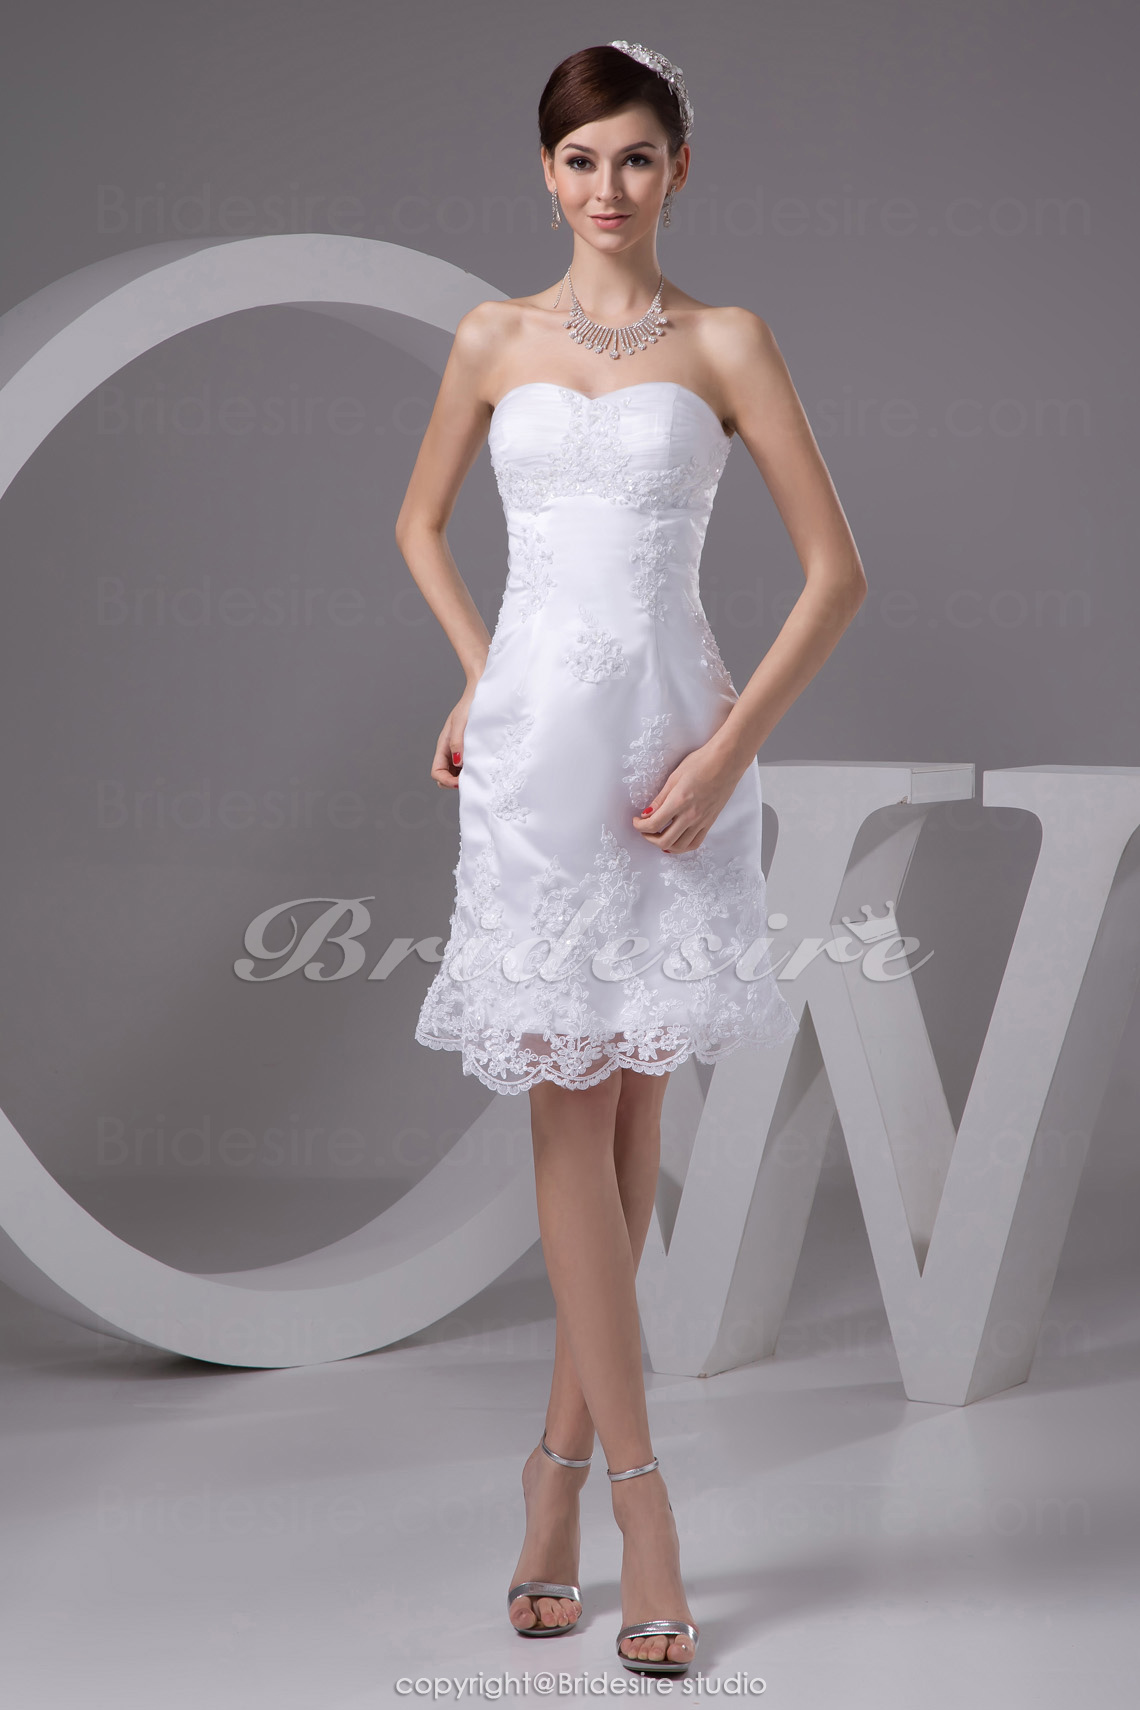 Sheath/Column Strapless Short/Mini Sleeveless Tulle Satin Weddin